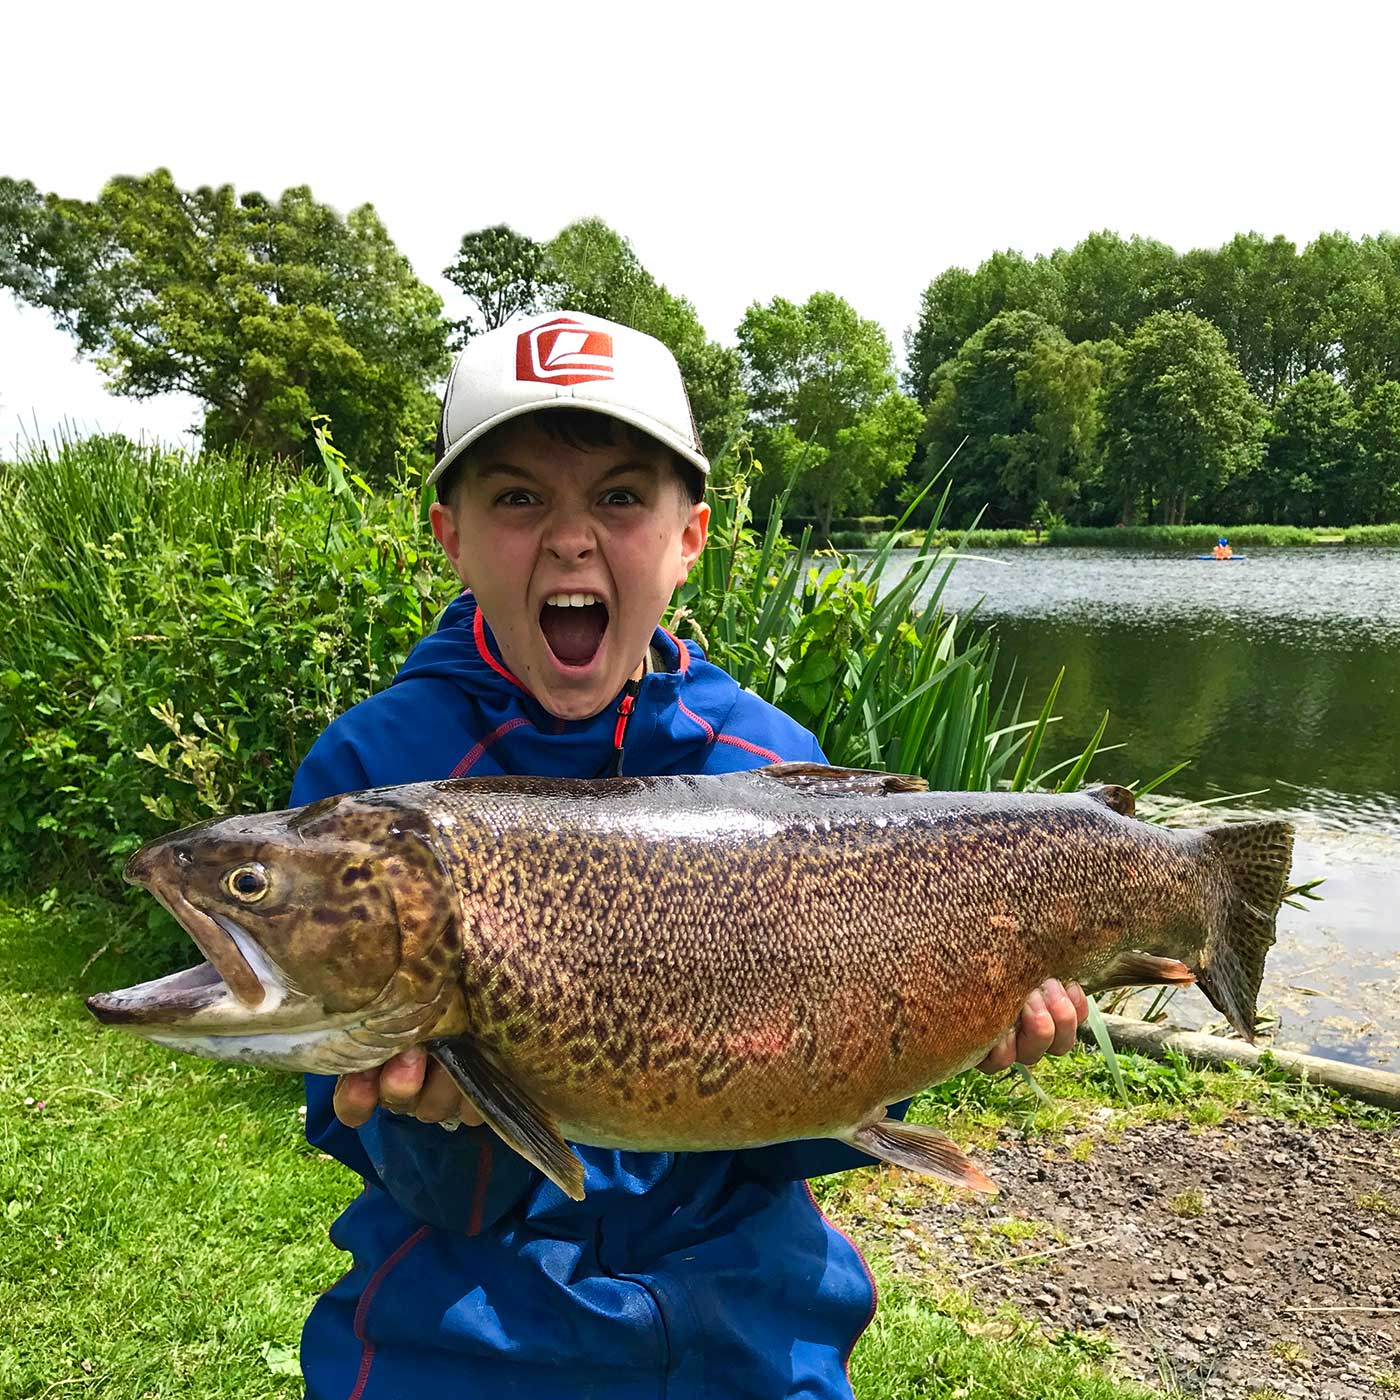 Alexander Jaffrey (aged 12) who caught this 13lb 2oz tiger at Dever Springs.